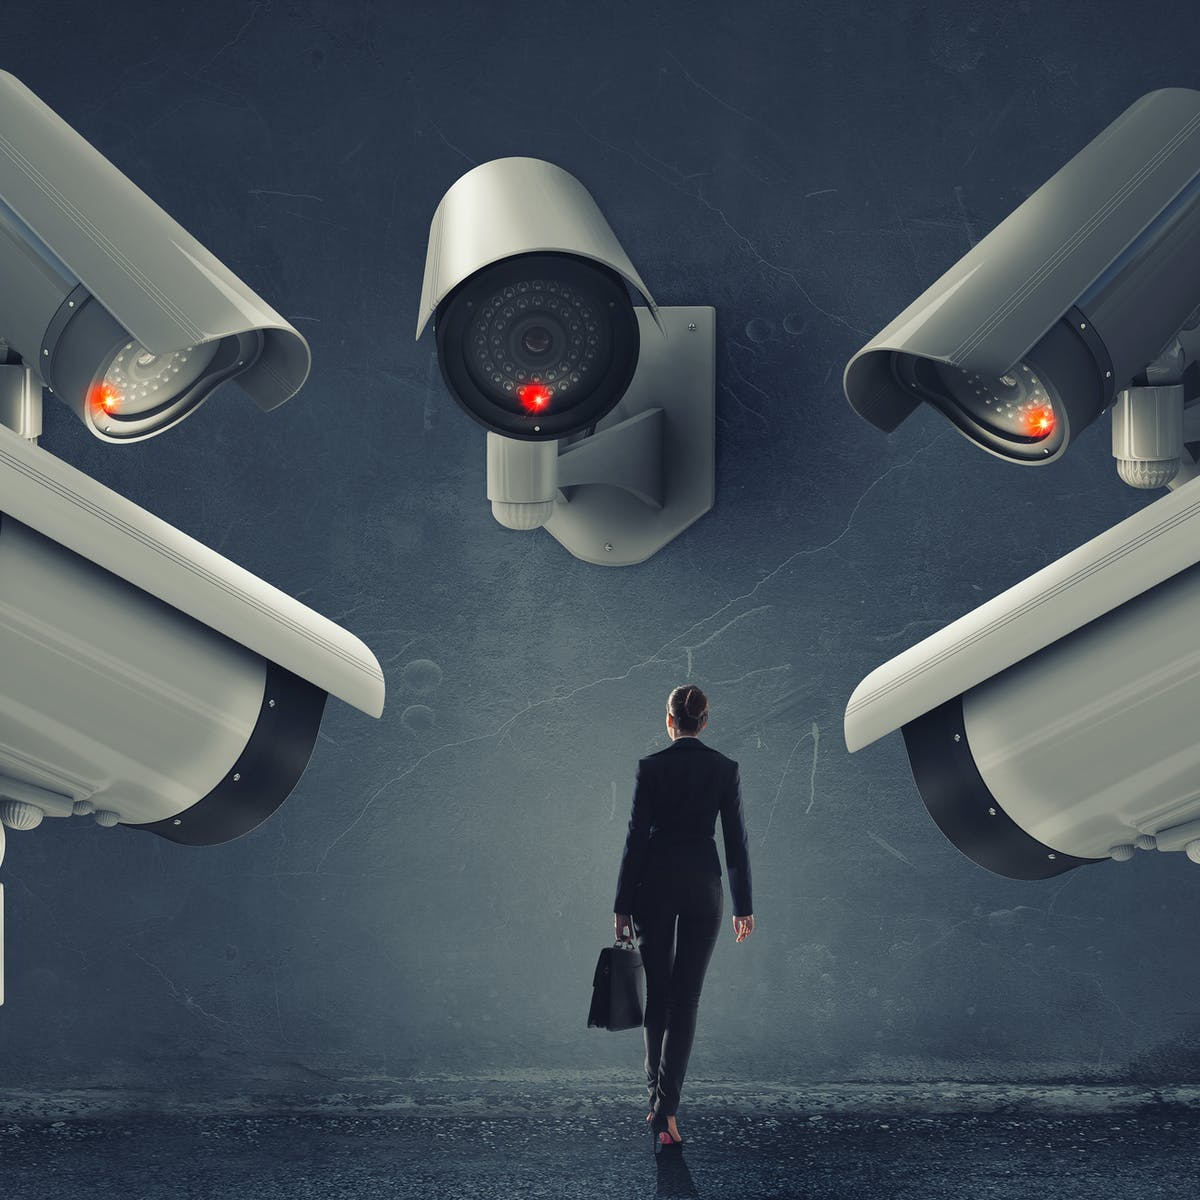 How CCTV surveillance poses a threat to privacy in South Africa